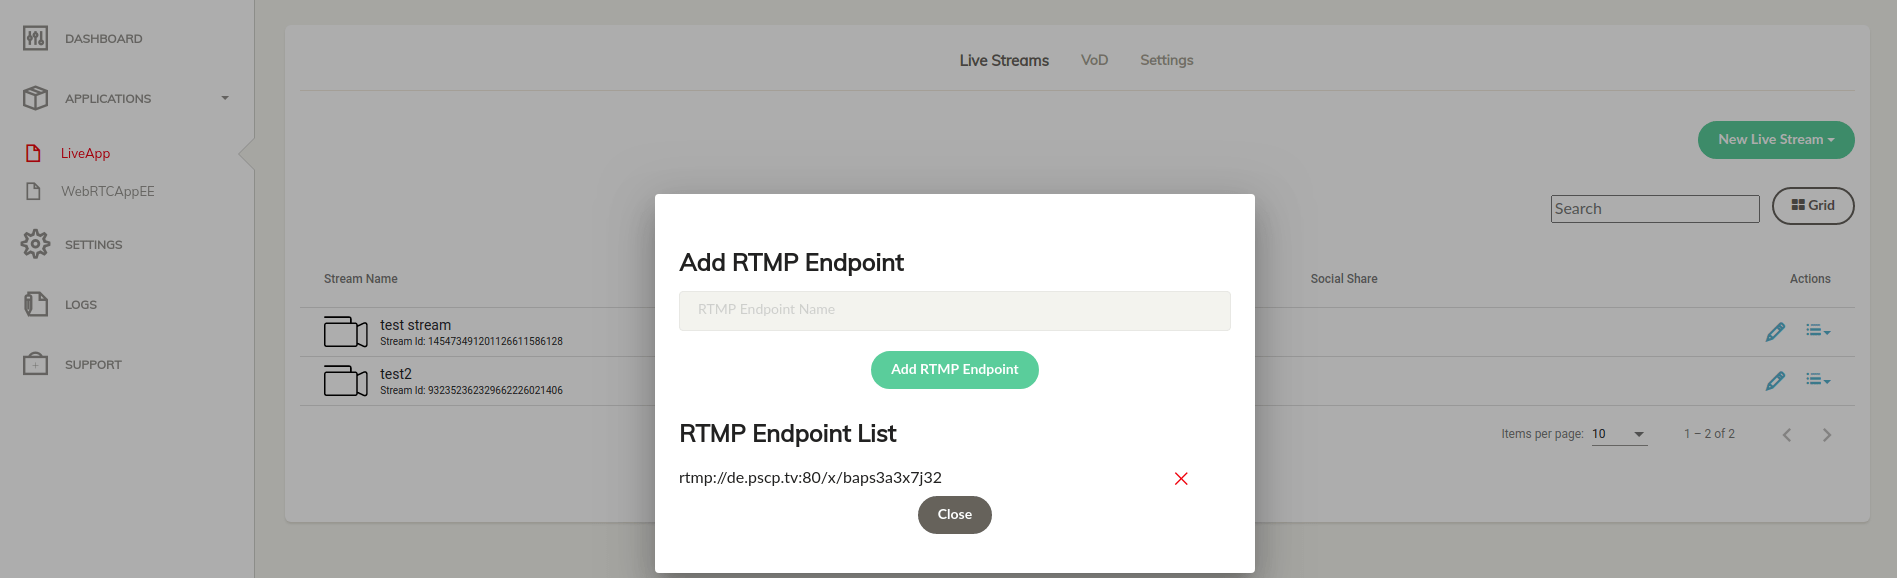 ant-media-dashboard-add-periscope-rtmp-endpoint